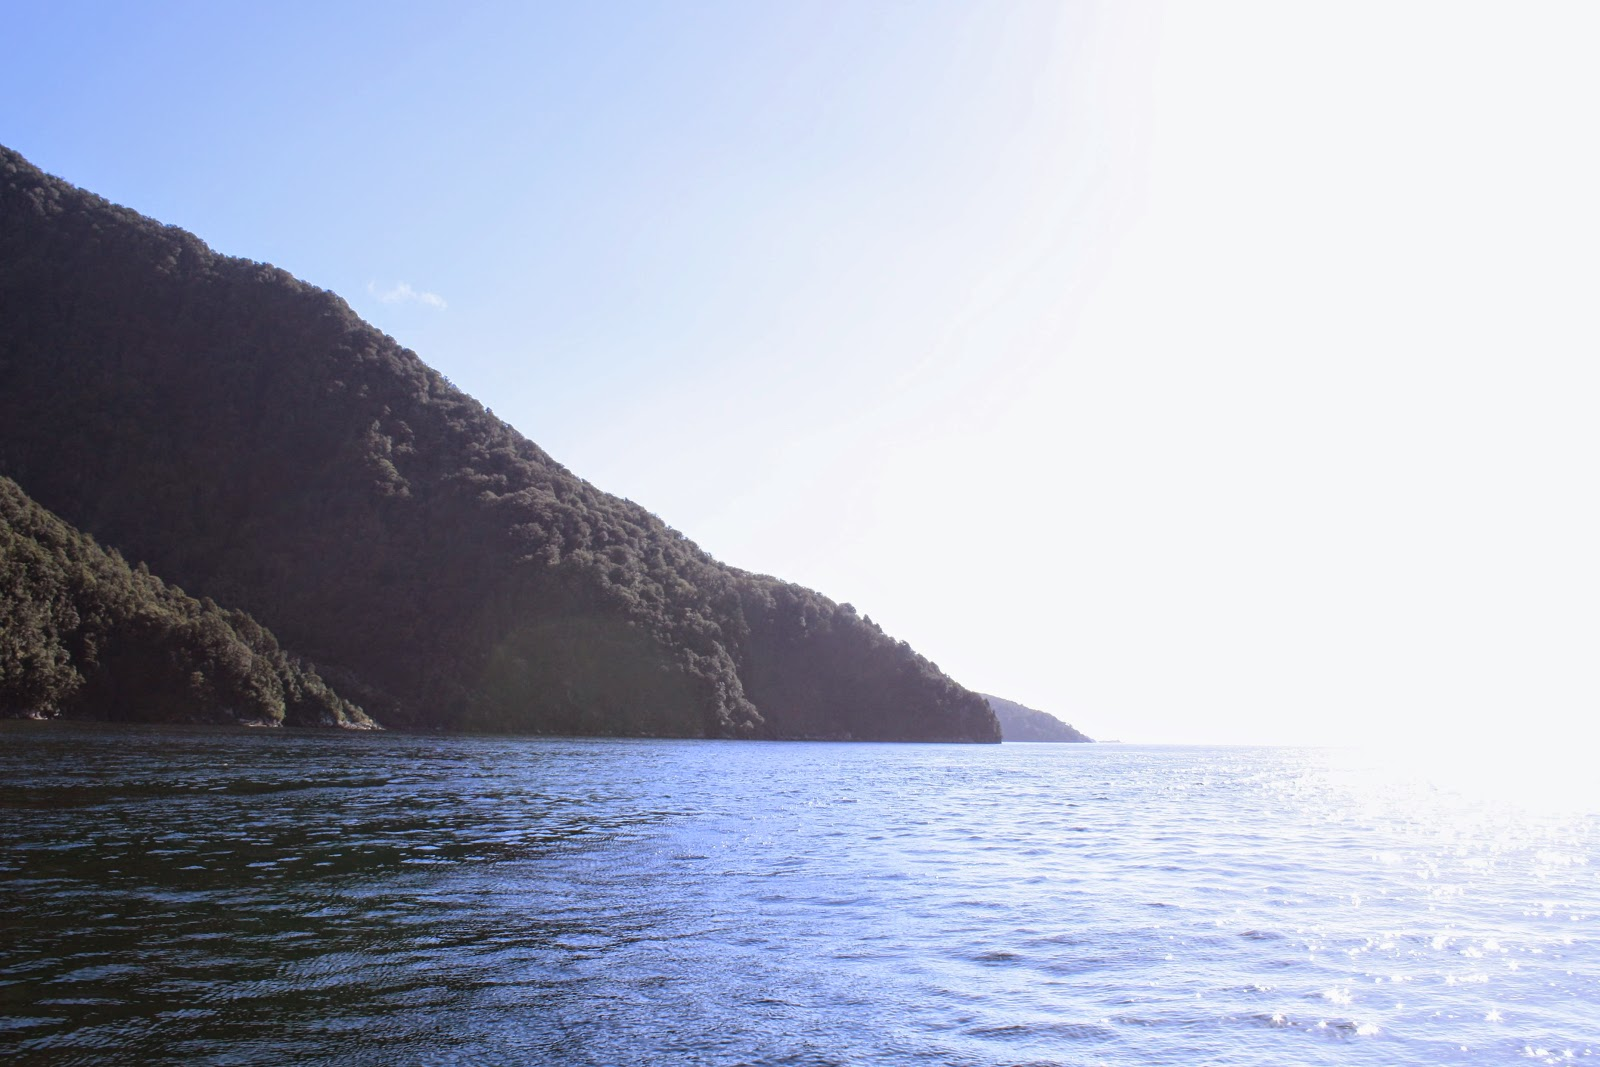 The edge of Milford Sound.